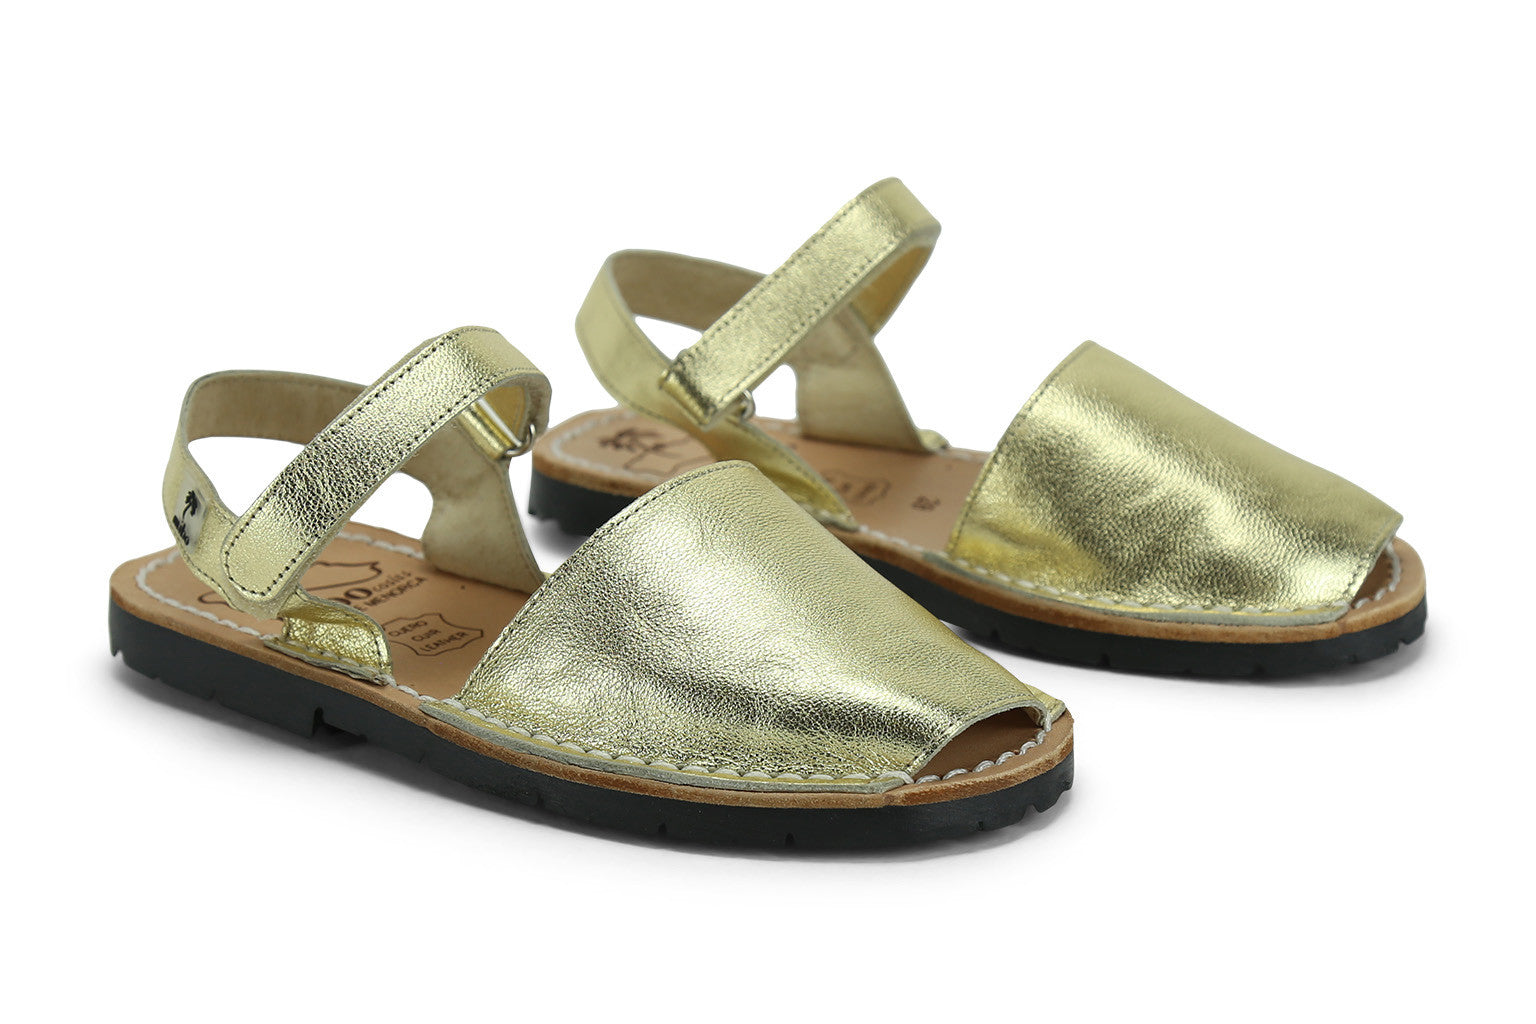 9055ccc5d Mibo Avarcas Kids Hook and Loop Gold Leather Slingback Sandals